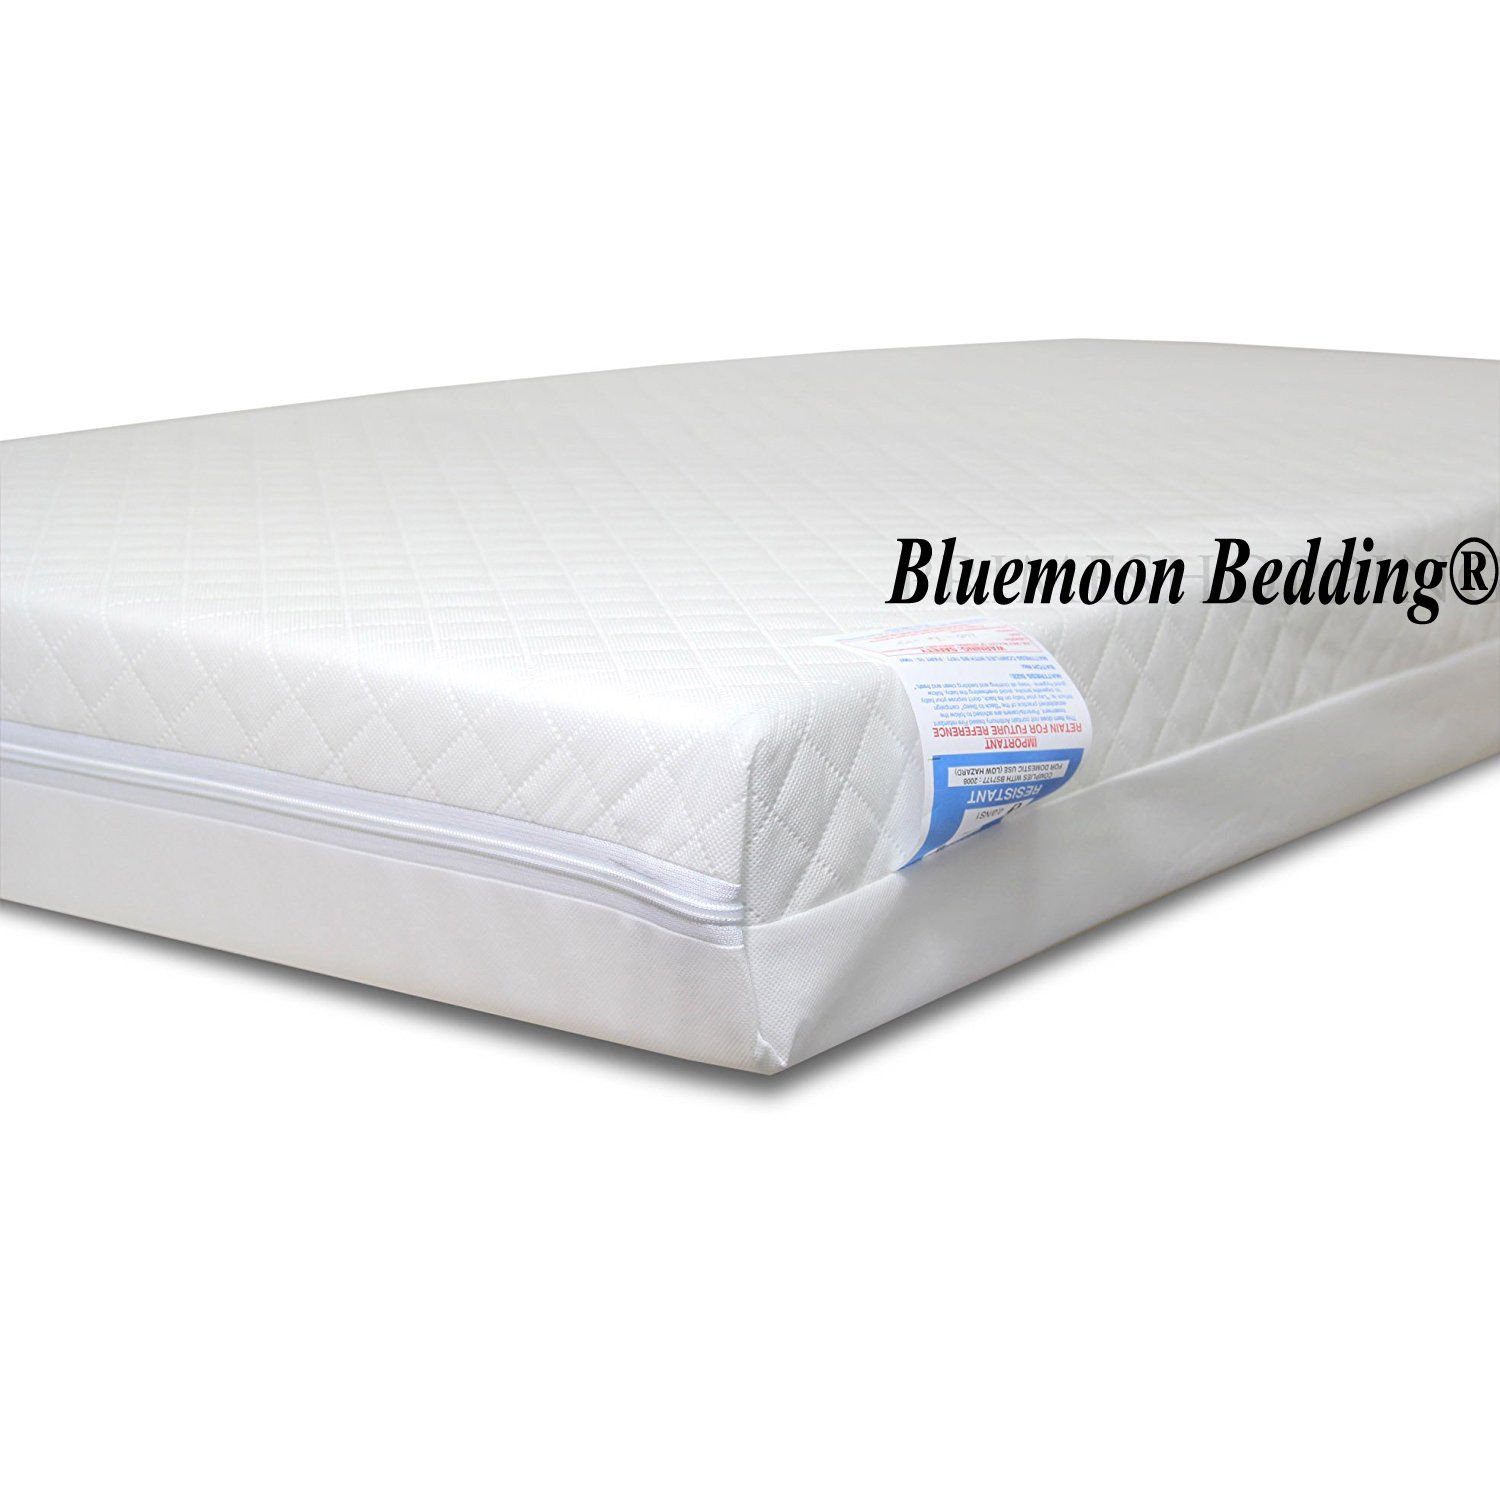 95 x 65 x 10 cm Fully Breathable Standard Travel Cot Mattress